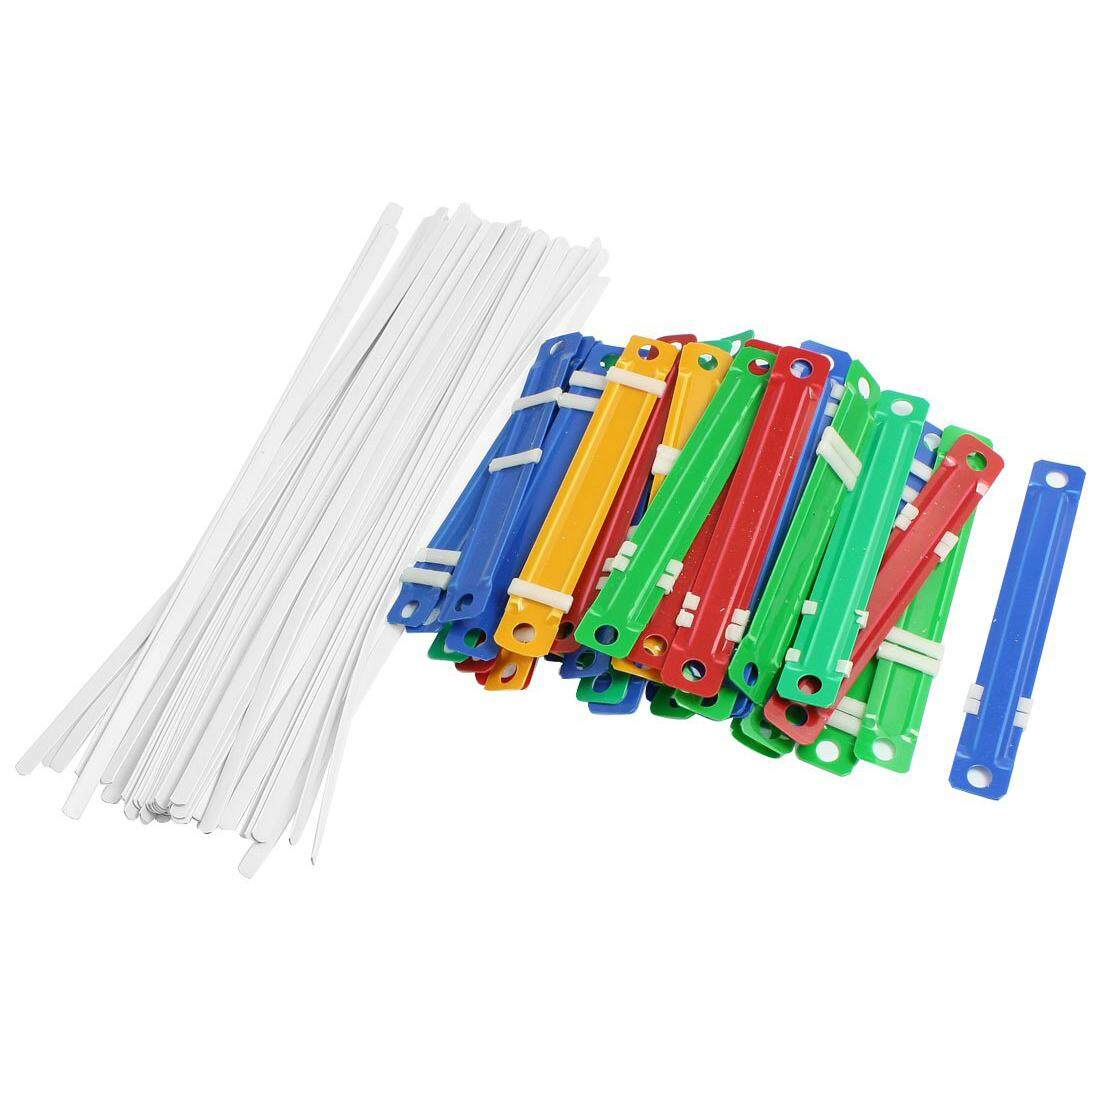 50 X Office School Colorful Plastic Binding Two-Piece Document Paper Fasteners - intl